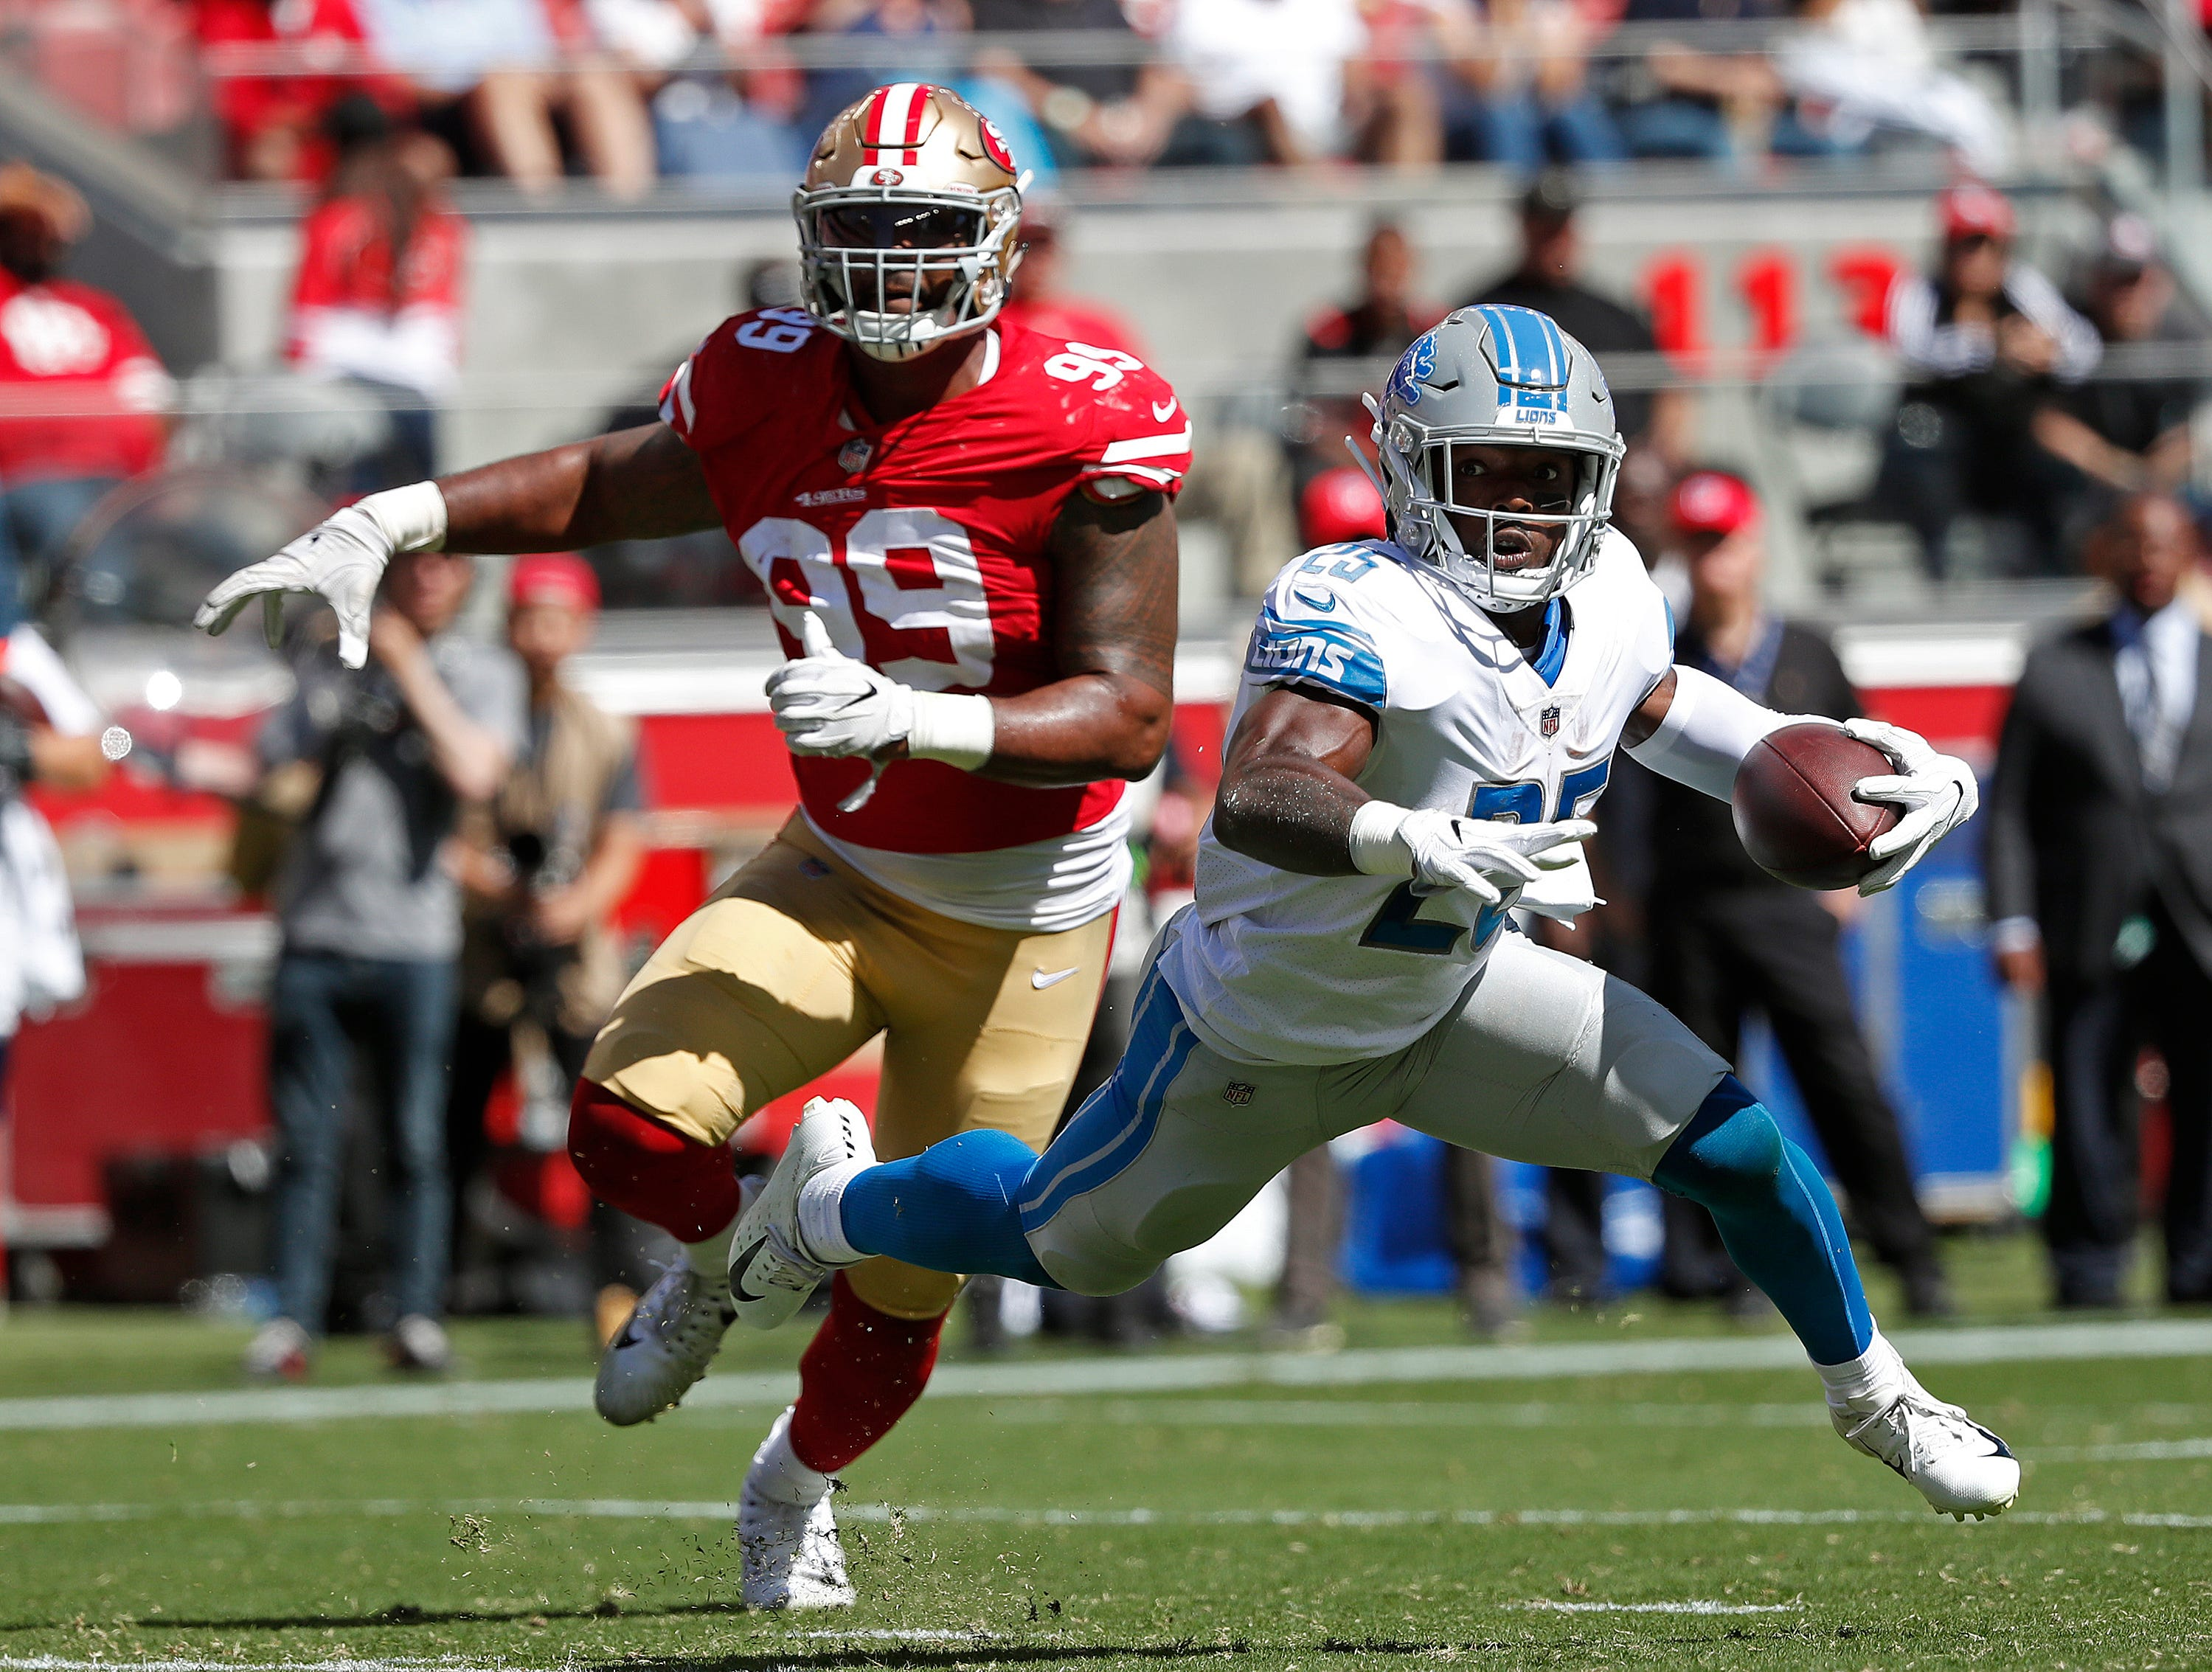 Detroit Lions running back Theo Riddick runs with the ball as San Francisco 49ers defensive end DeForest Buckner (99) pursues during the first half of an NFL football game in Santa Clara, Calif., Sunday, Sept. 16, 2018. (AP Photo/Tony Avelar)